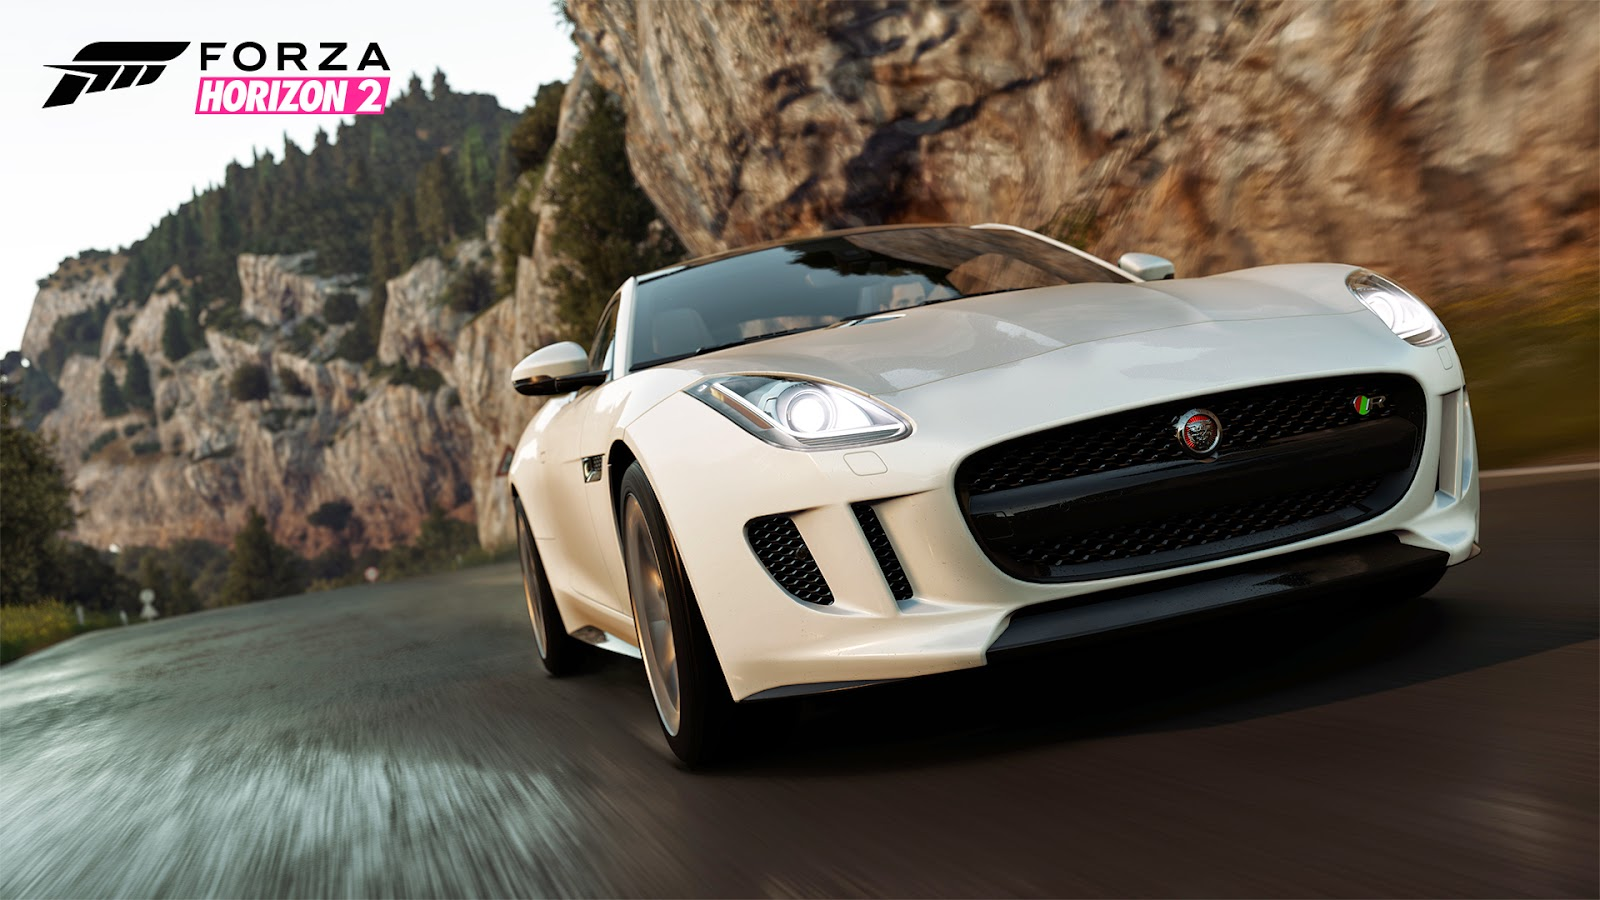 The forza horizon 2 mobil 1 car pack